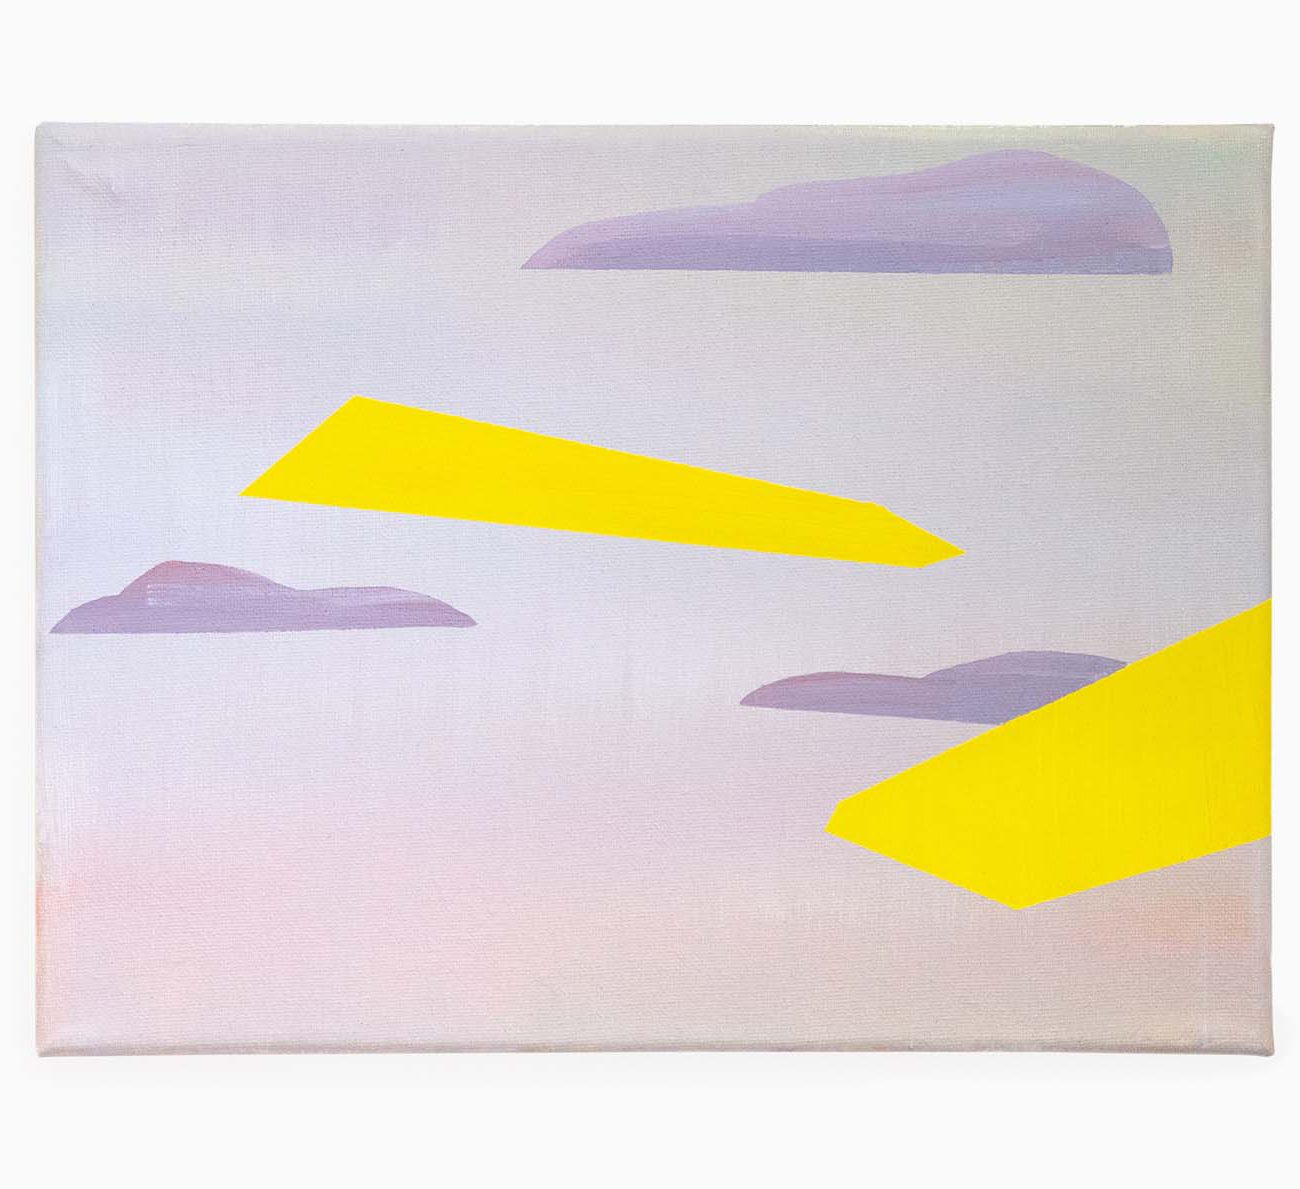 Islands 12 (W) x 9 (H) Inches Oil on Canvas 2020 by 권재나 Jaena Kwon